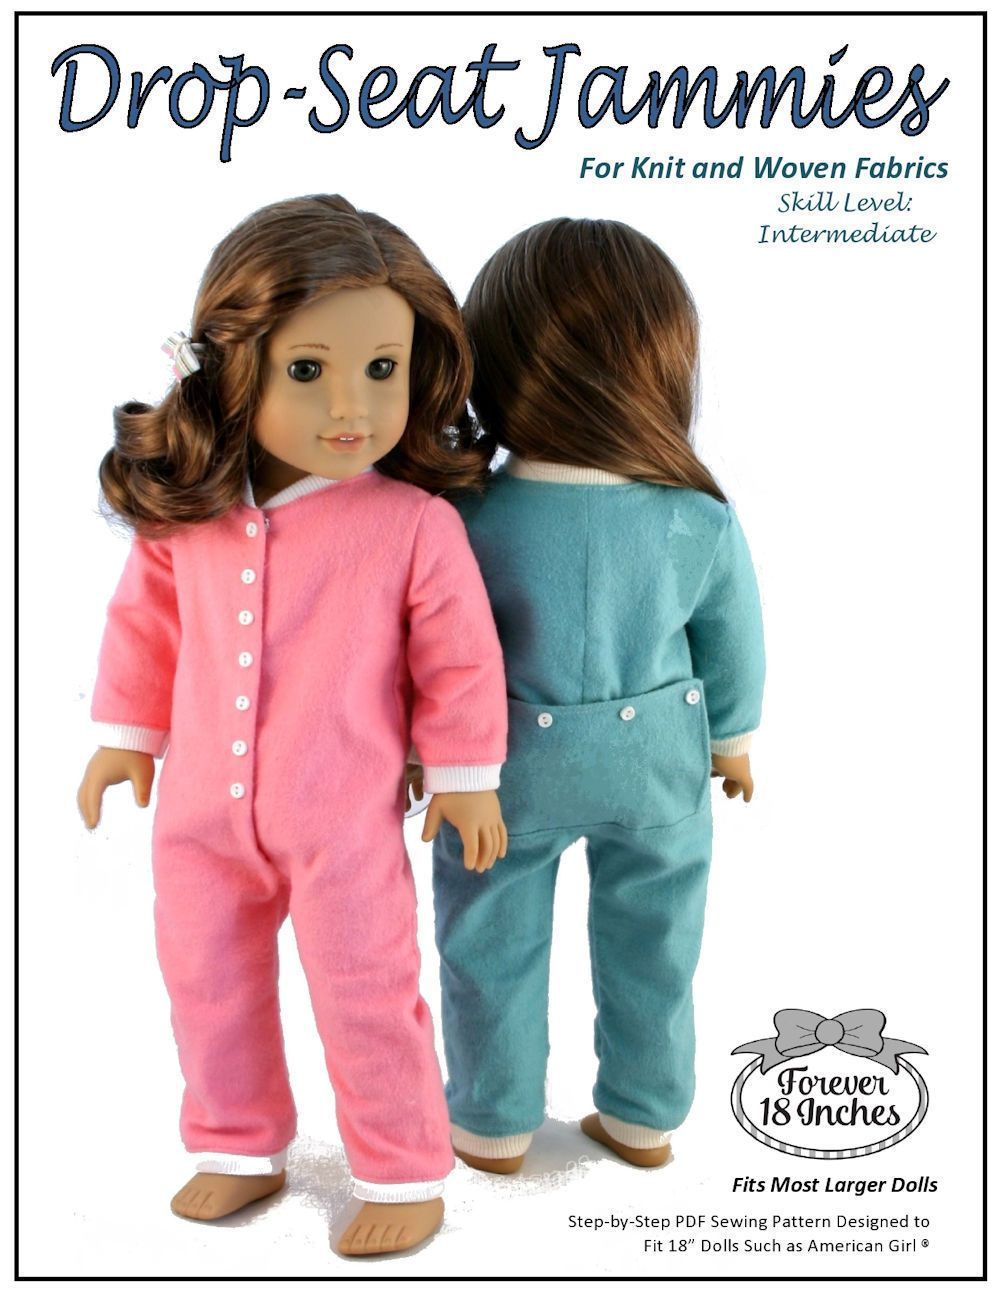 872c4ff5e9cd Forever 18 Inches Drop-Seat Jammies Doll Clothes Pattern 18 inch ...